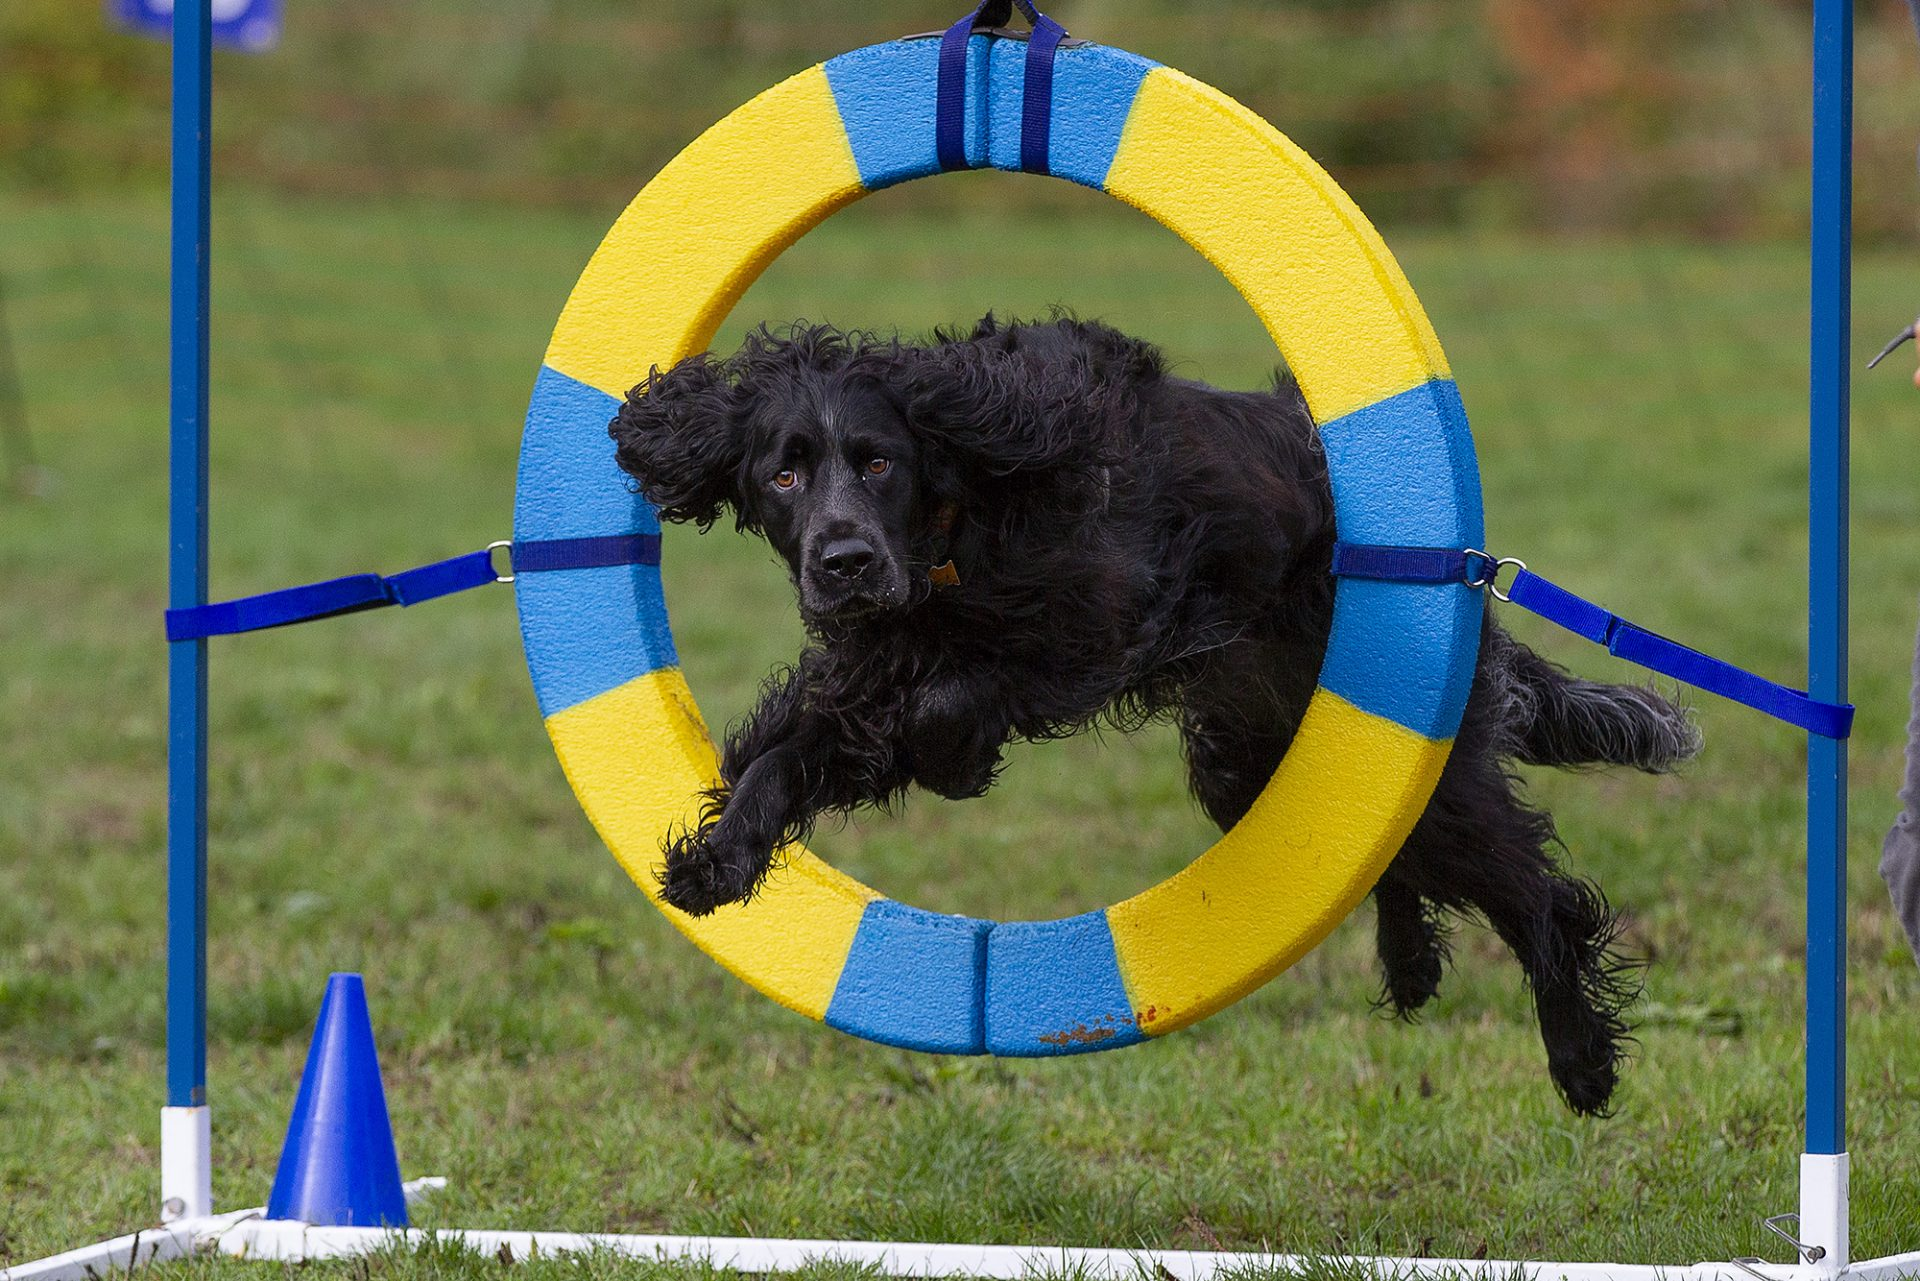 Picardy spaniel through tire jump in dog agility